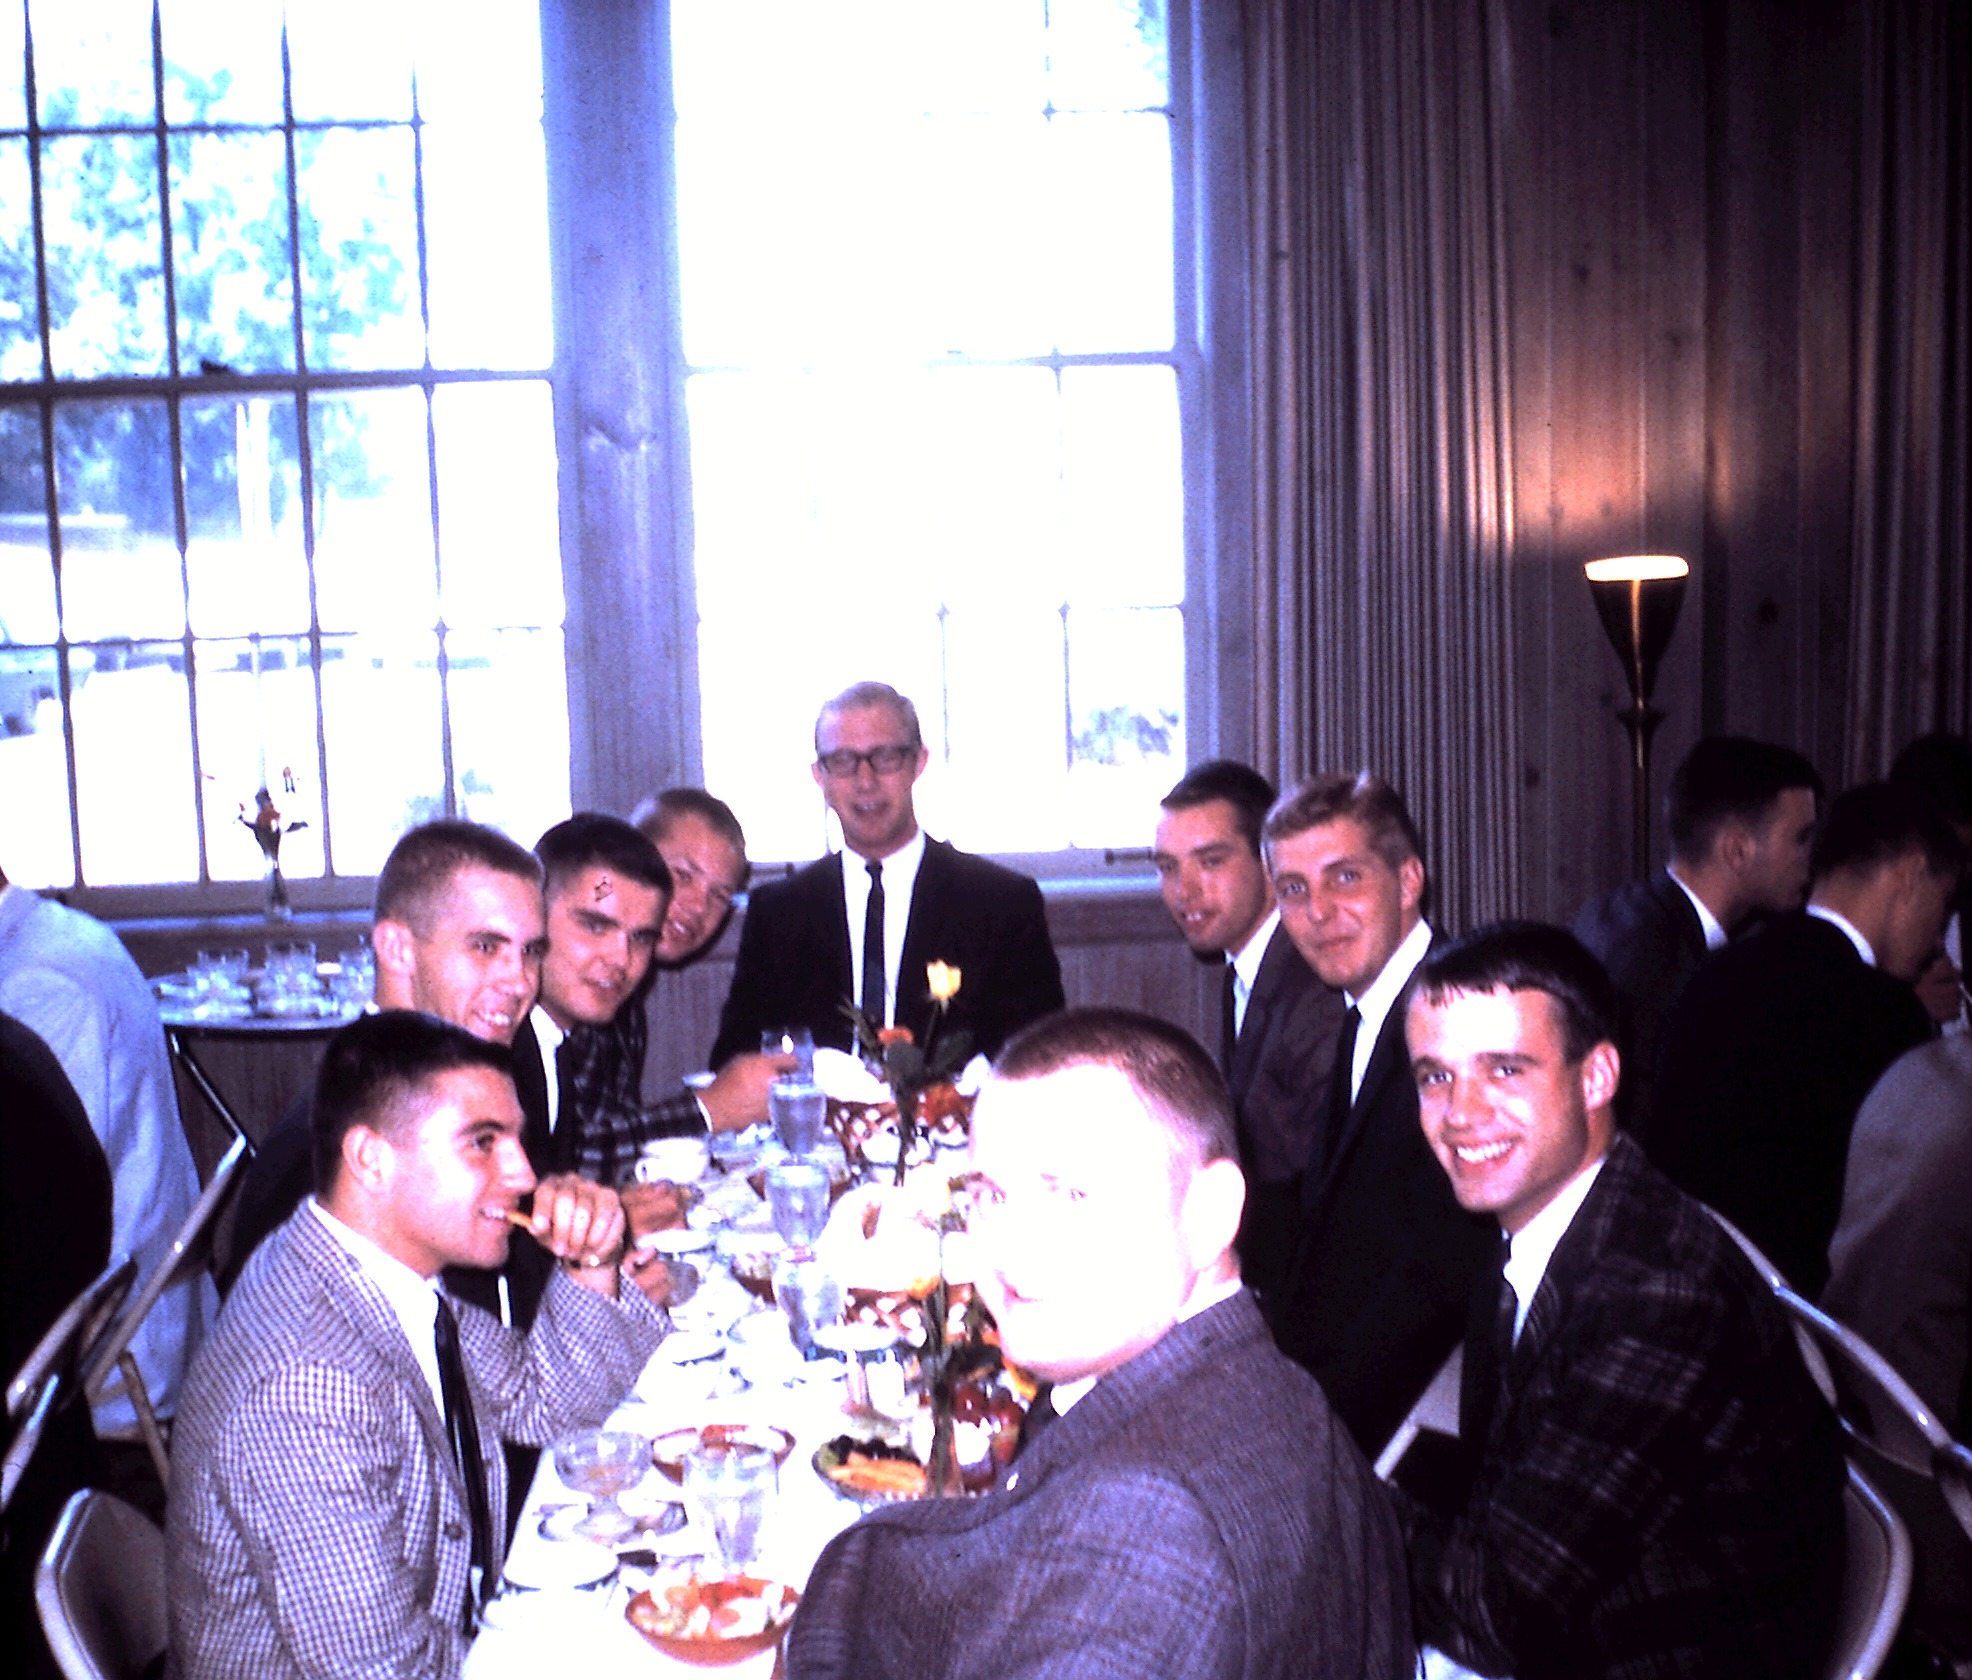 Sigma members at an Initiation banquet, 1963